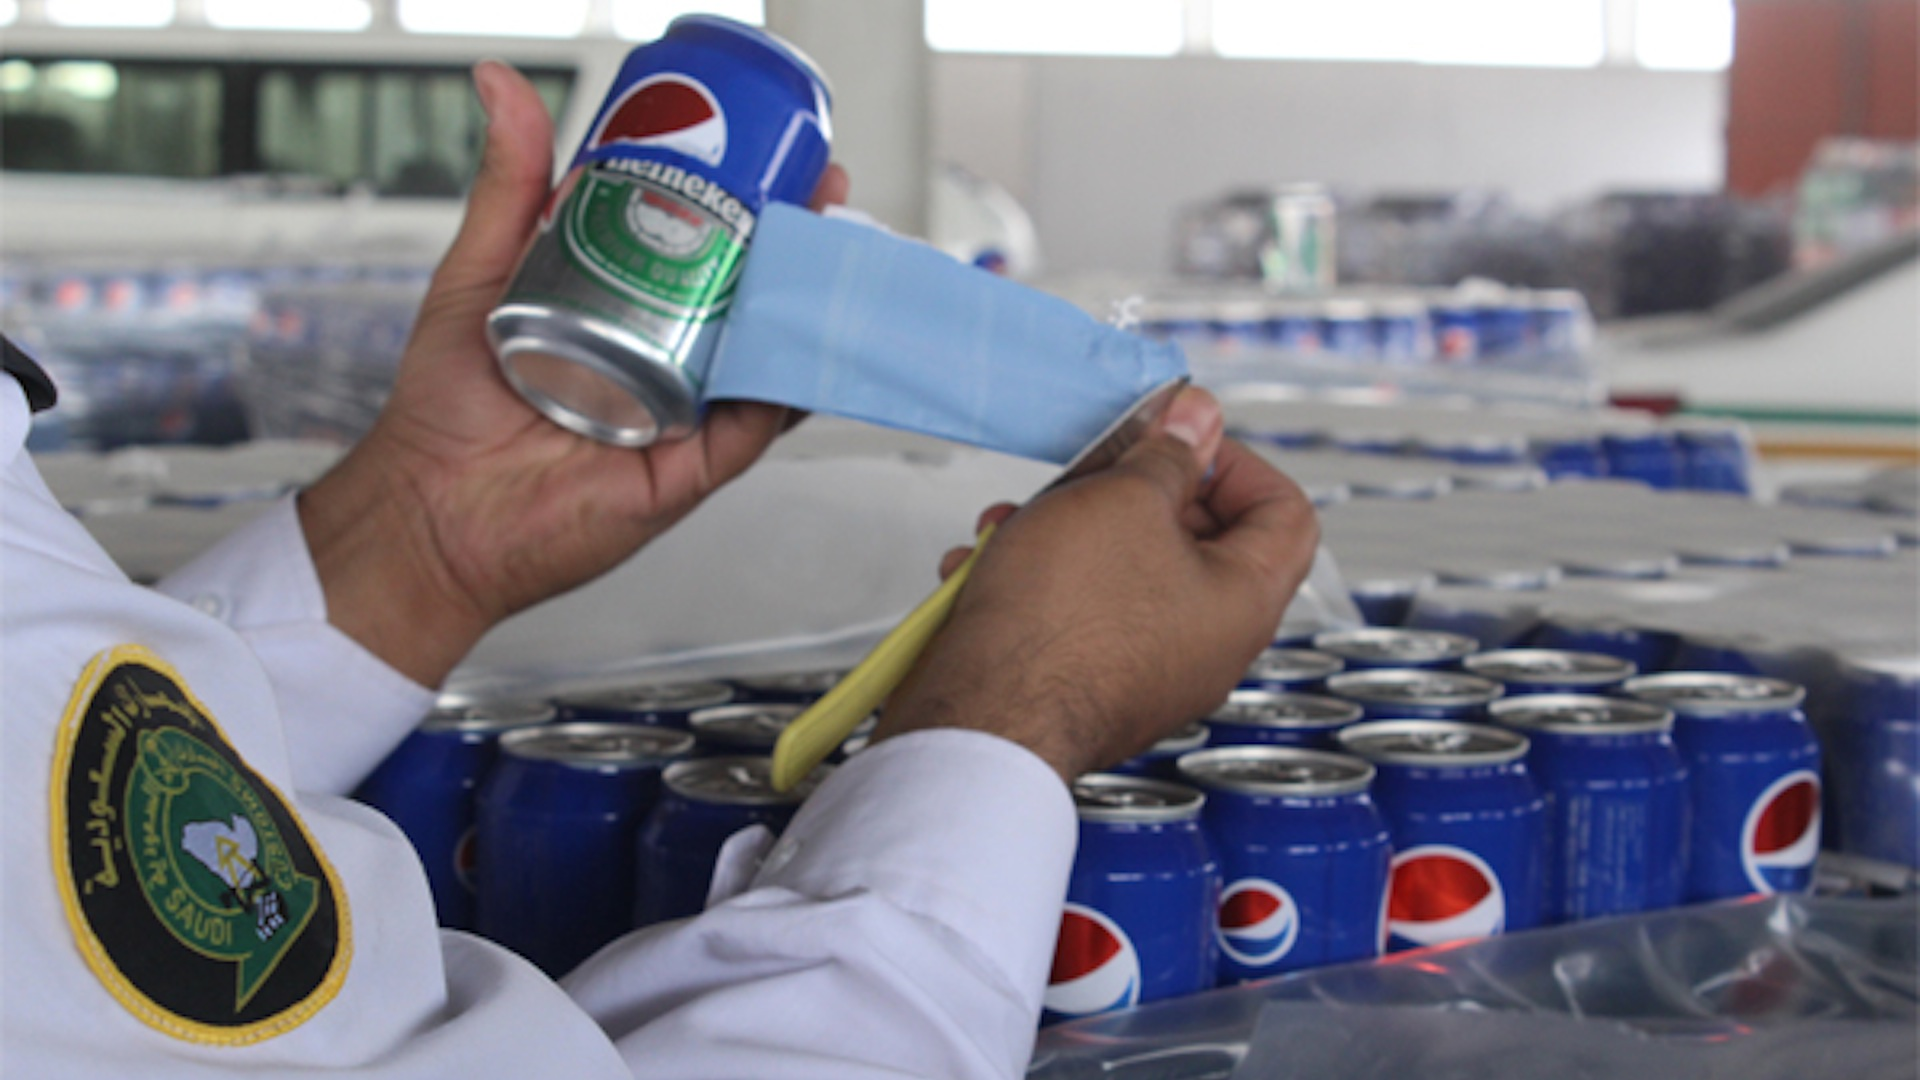 pepsi saudi essay Pepsi company research papers provide a case study and comparison to coca-cola custom business case studies from paper masters for all your academic writing needs.